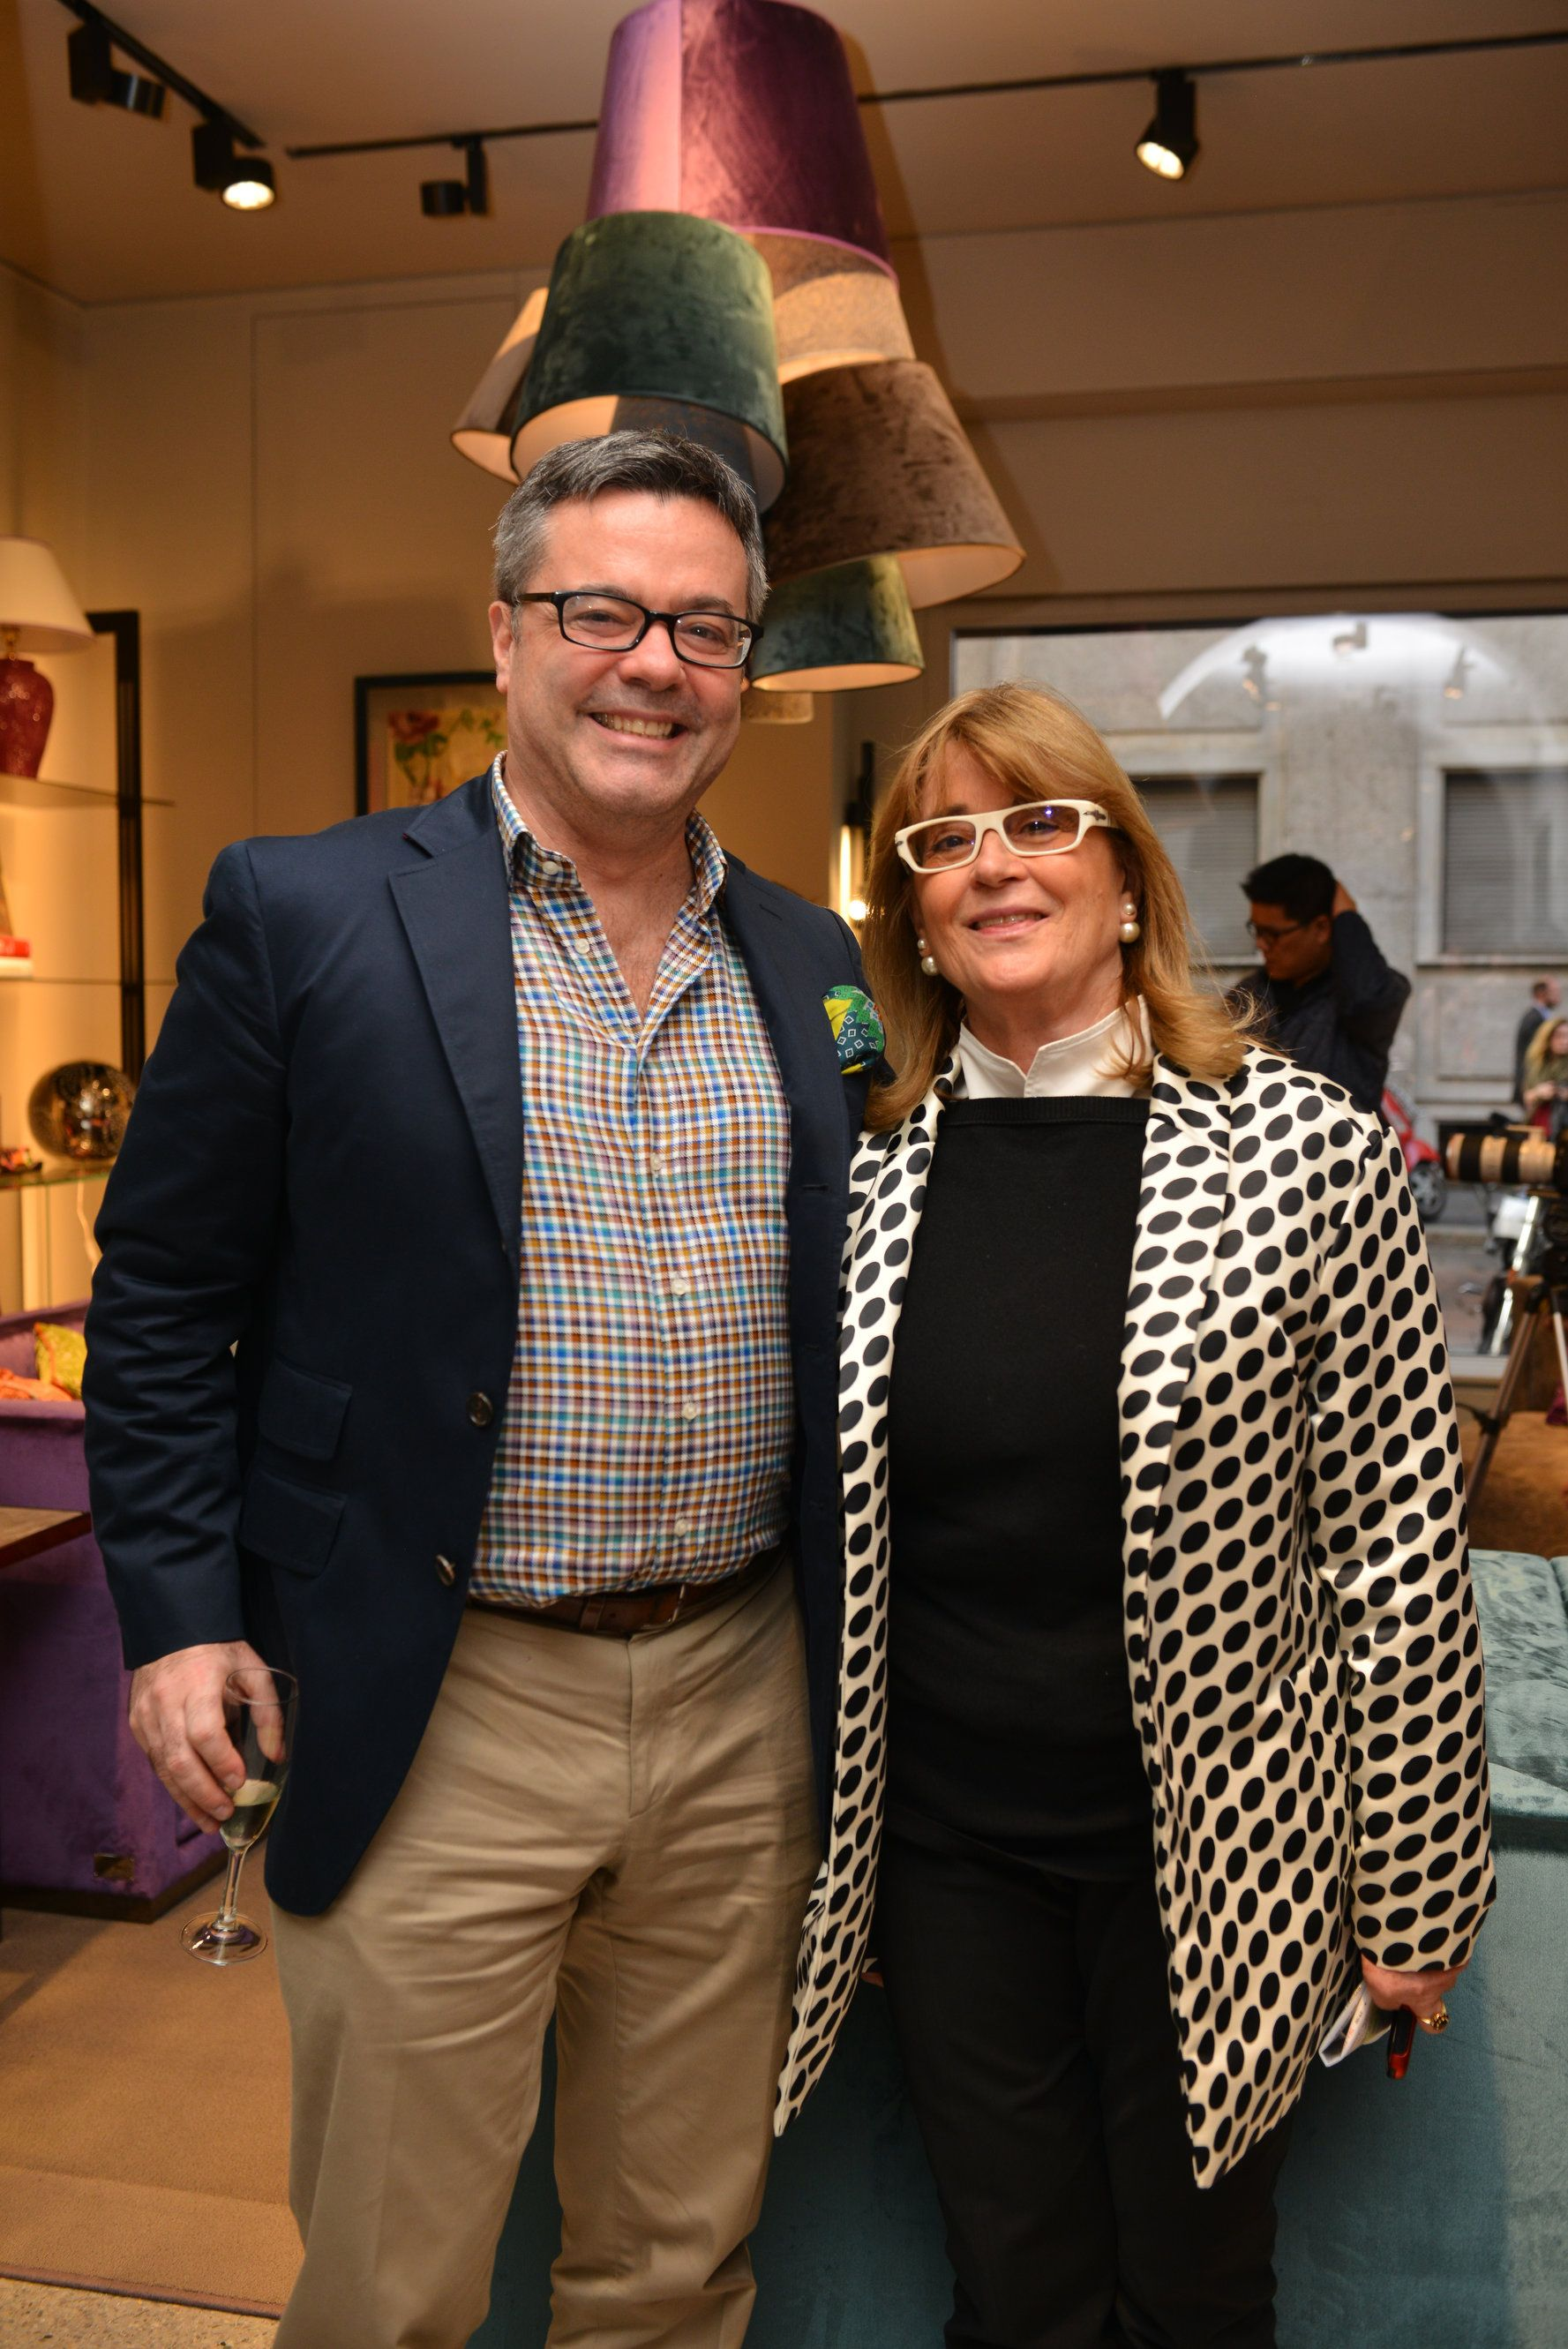 Jacopo Etro with Gilda Bojardi at the presentation of the new Etro Home Furnishings collection held at Etro Home in via Pontaccio 17, Milan